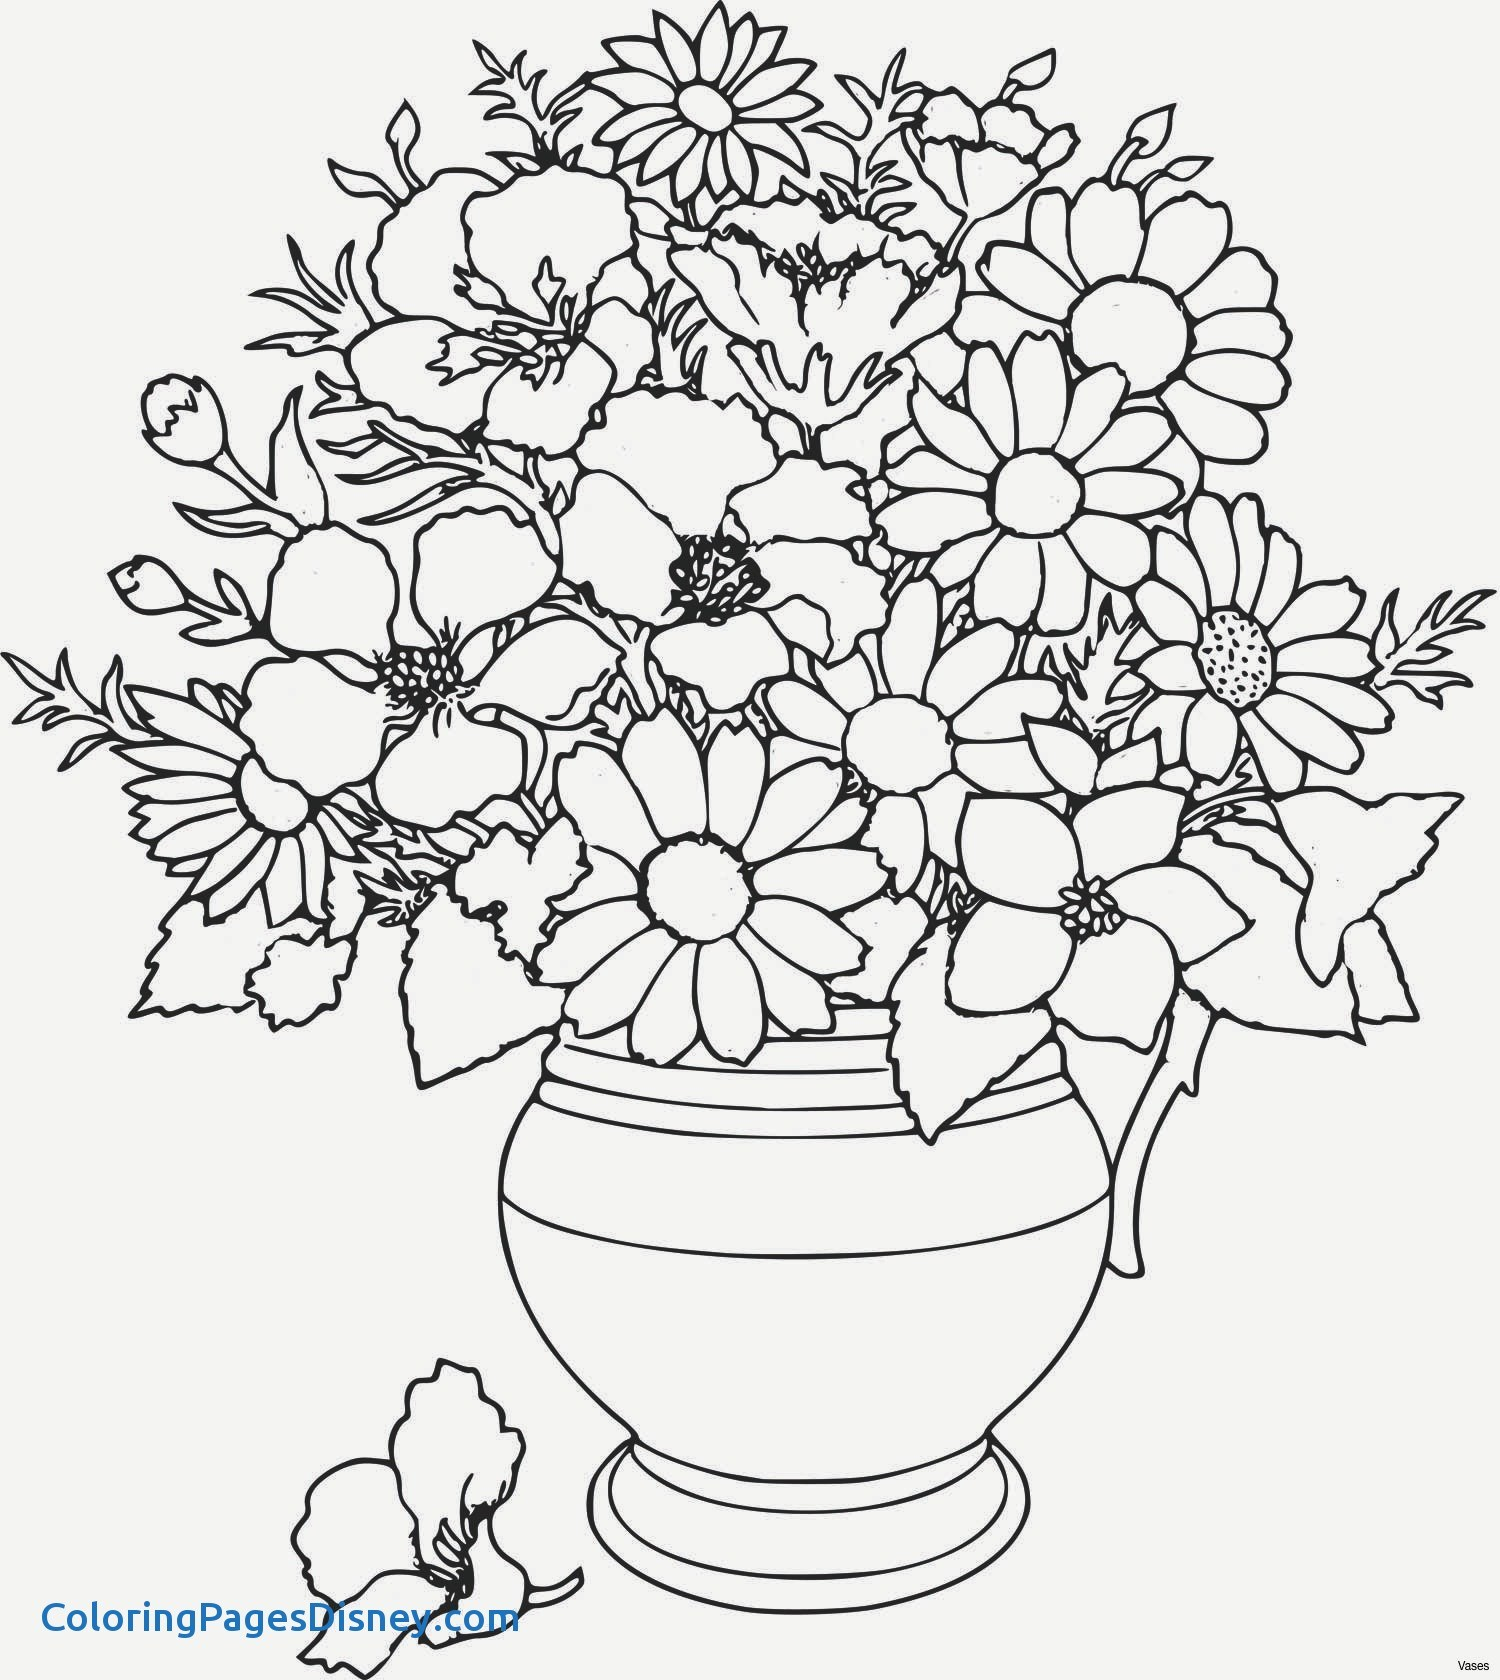 1500x1680 Coloring Pages Vase Fresh Coloring Pages Roses New Vases Flower